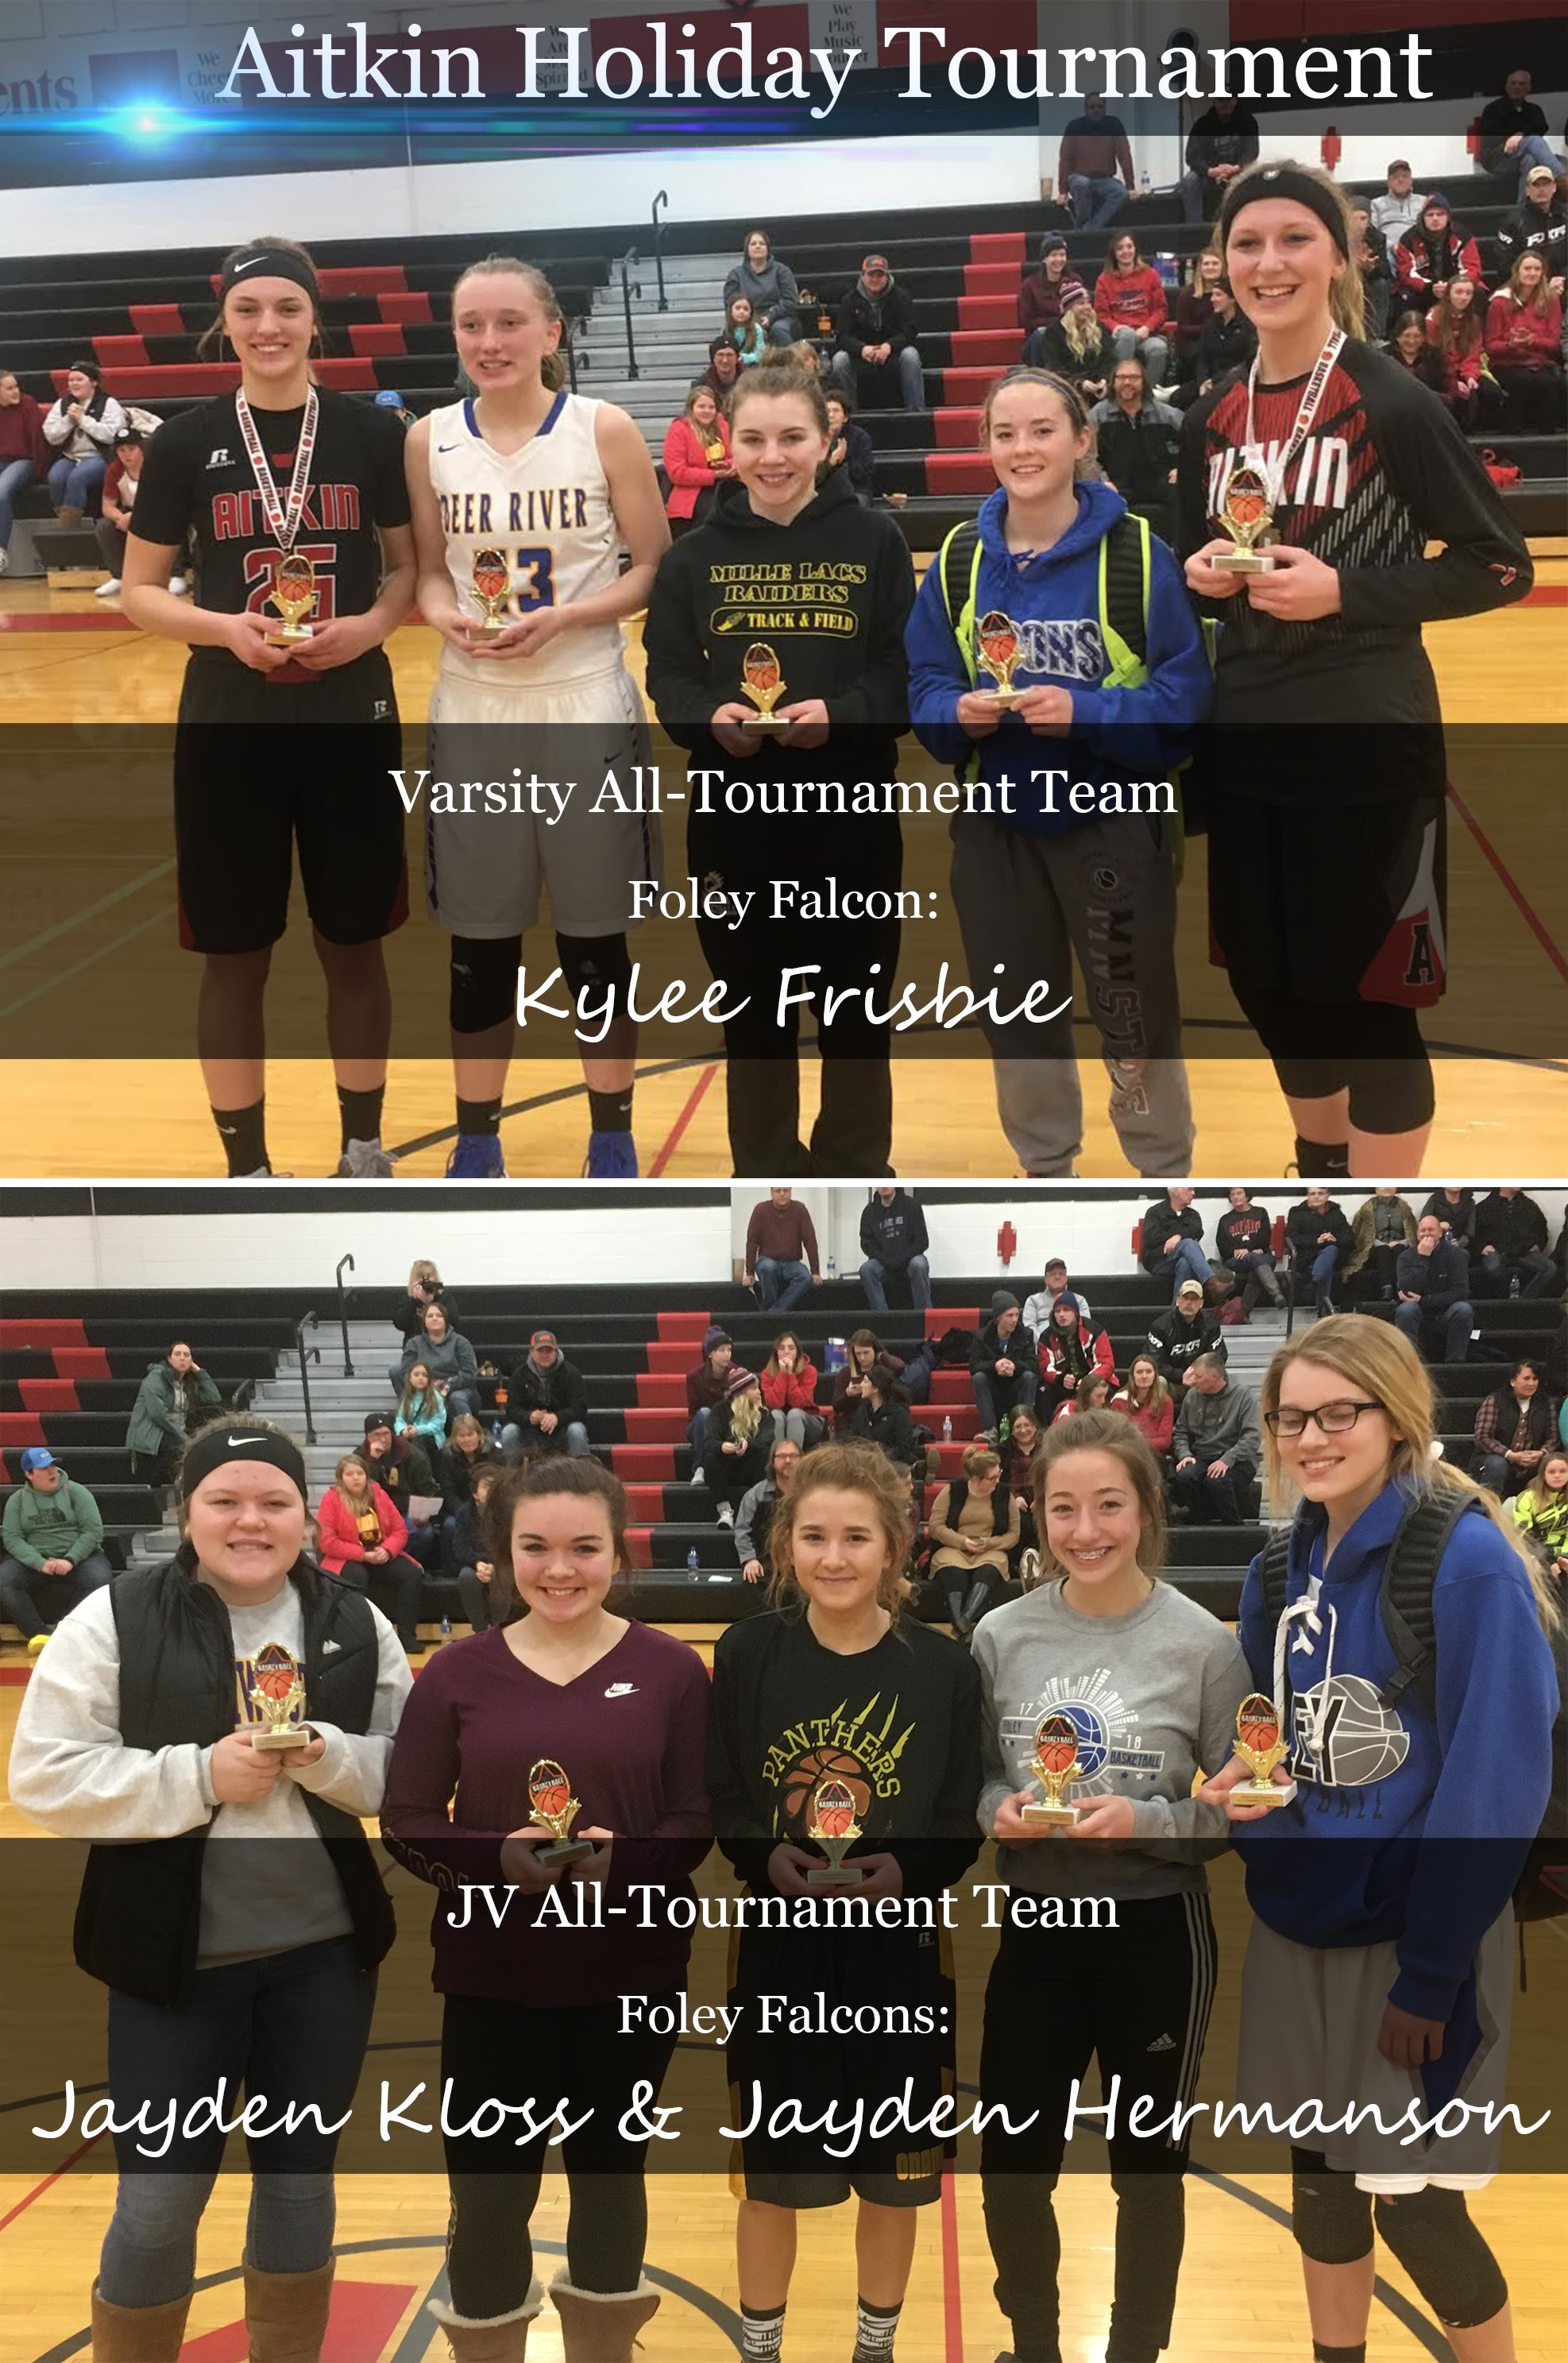 Aitkin Holiday Tournament